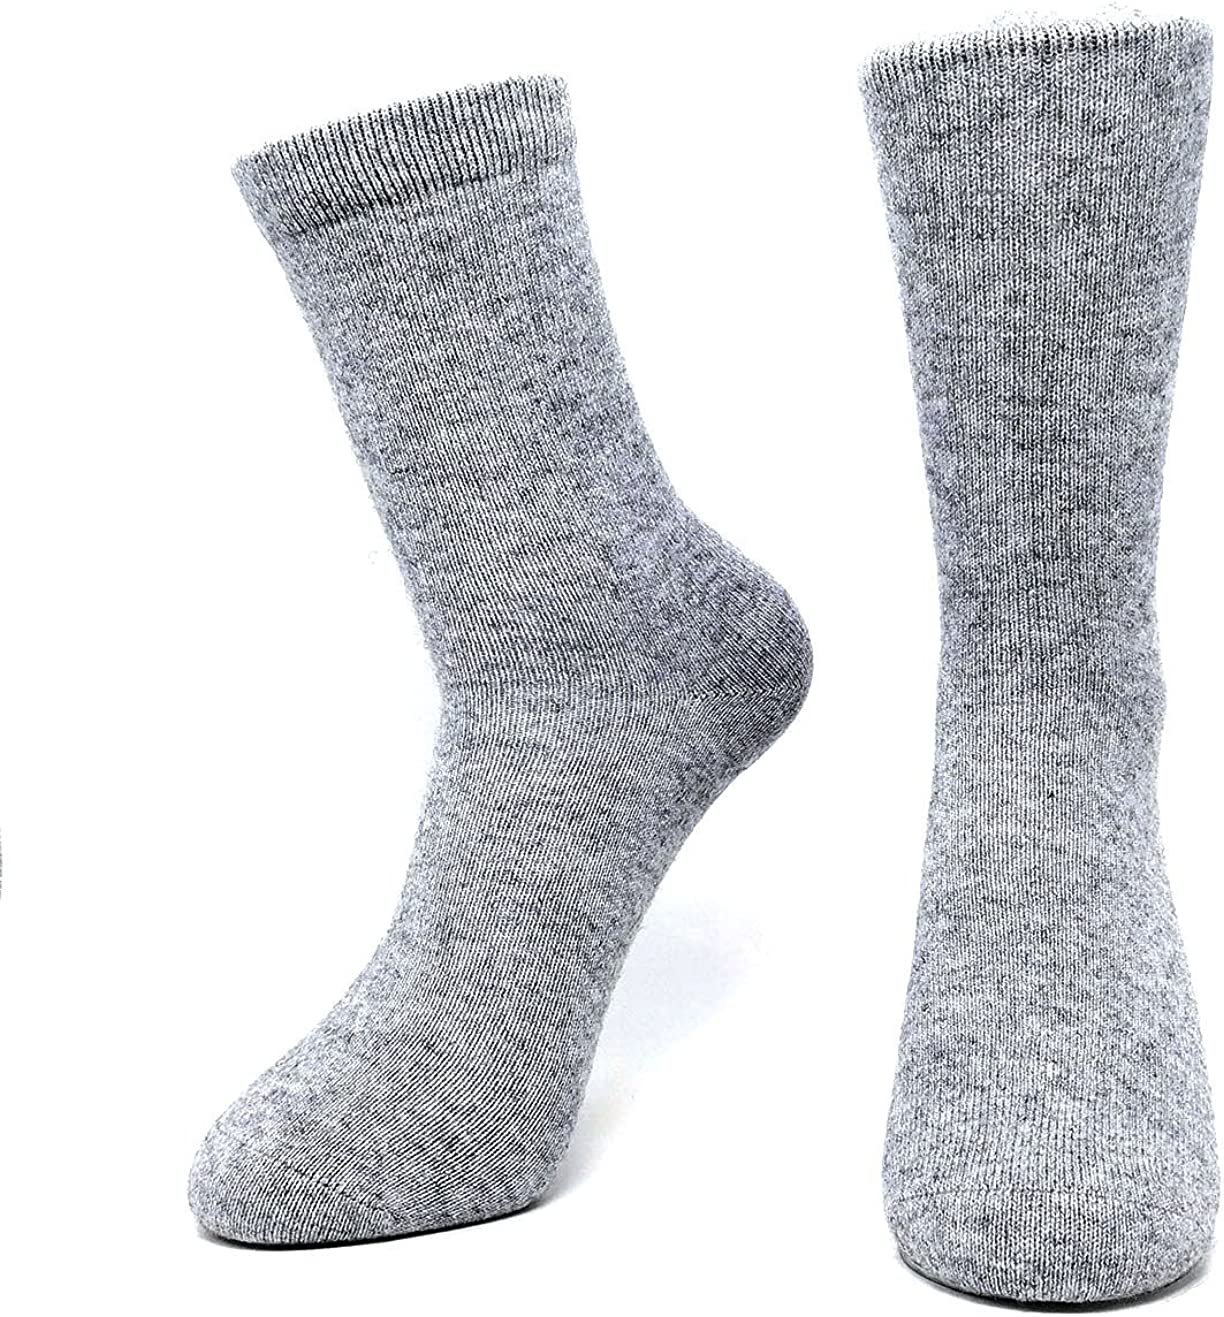 Mongolia Pure Cashmere Thick Unisex Men Women Crew Mid Calf Causal Socks, Smooth Toes and Heel Sewed by Handwork